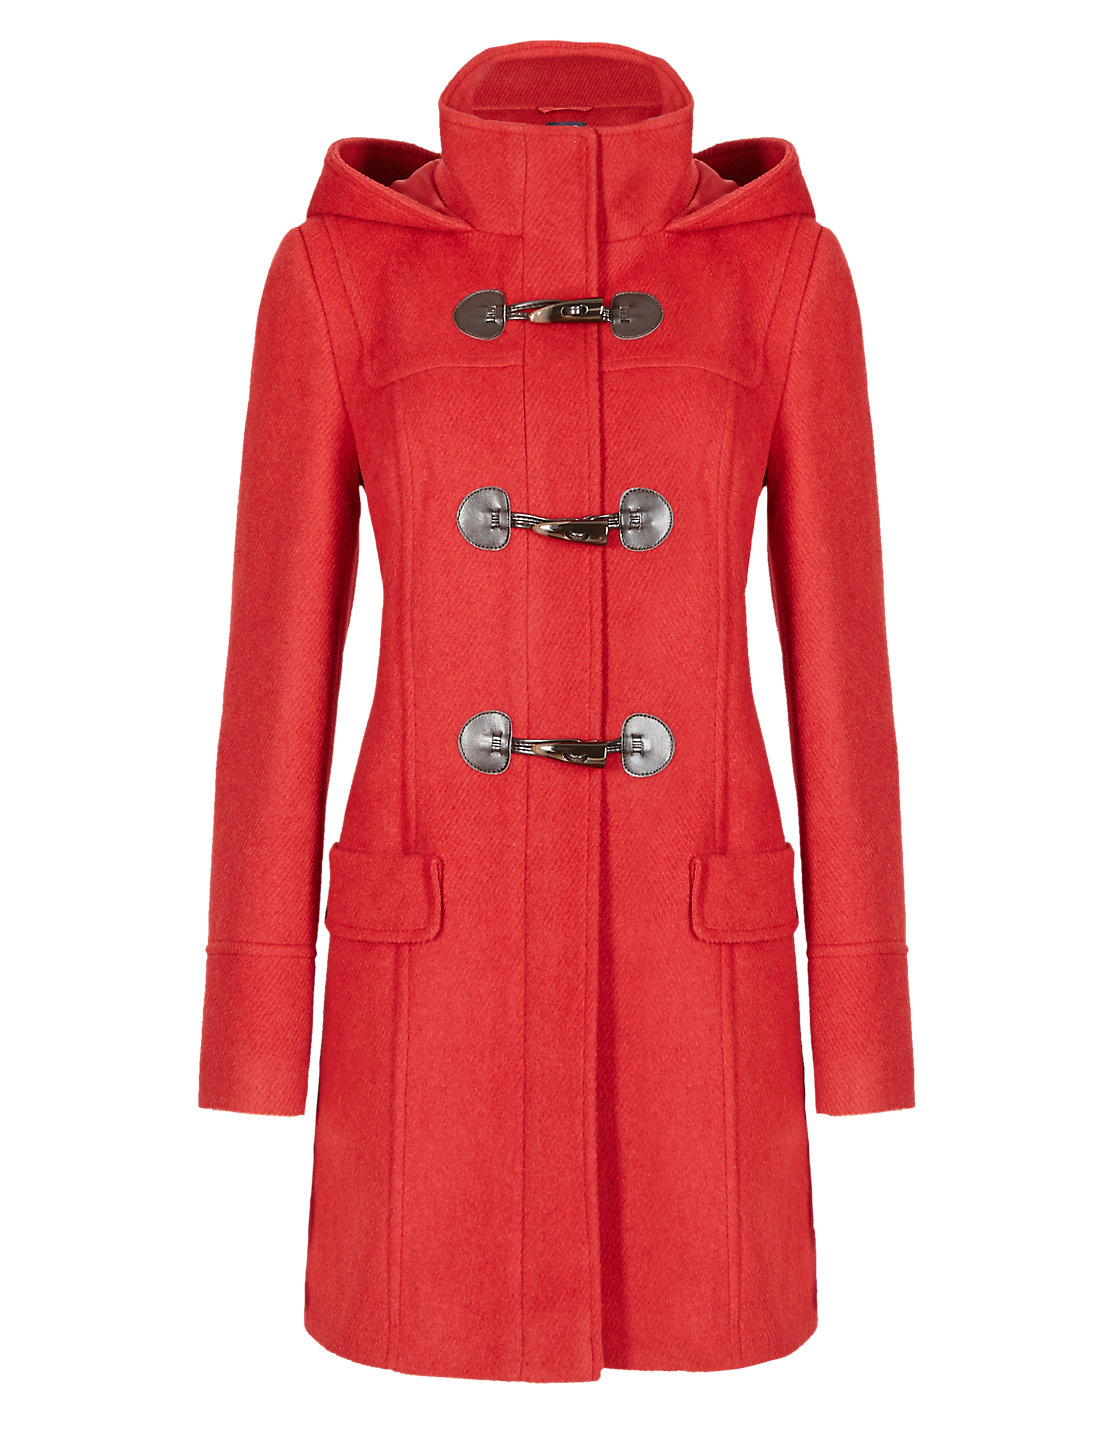 Hooded Duffle Coat with Wool | M&S